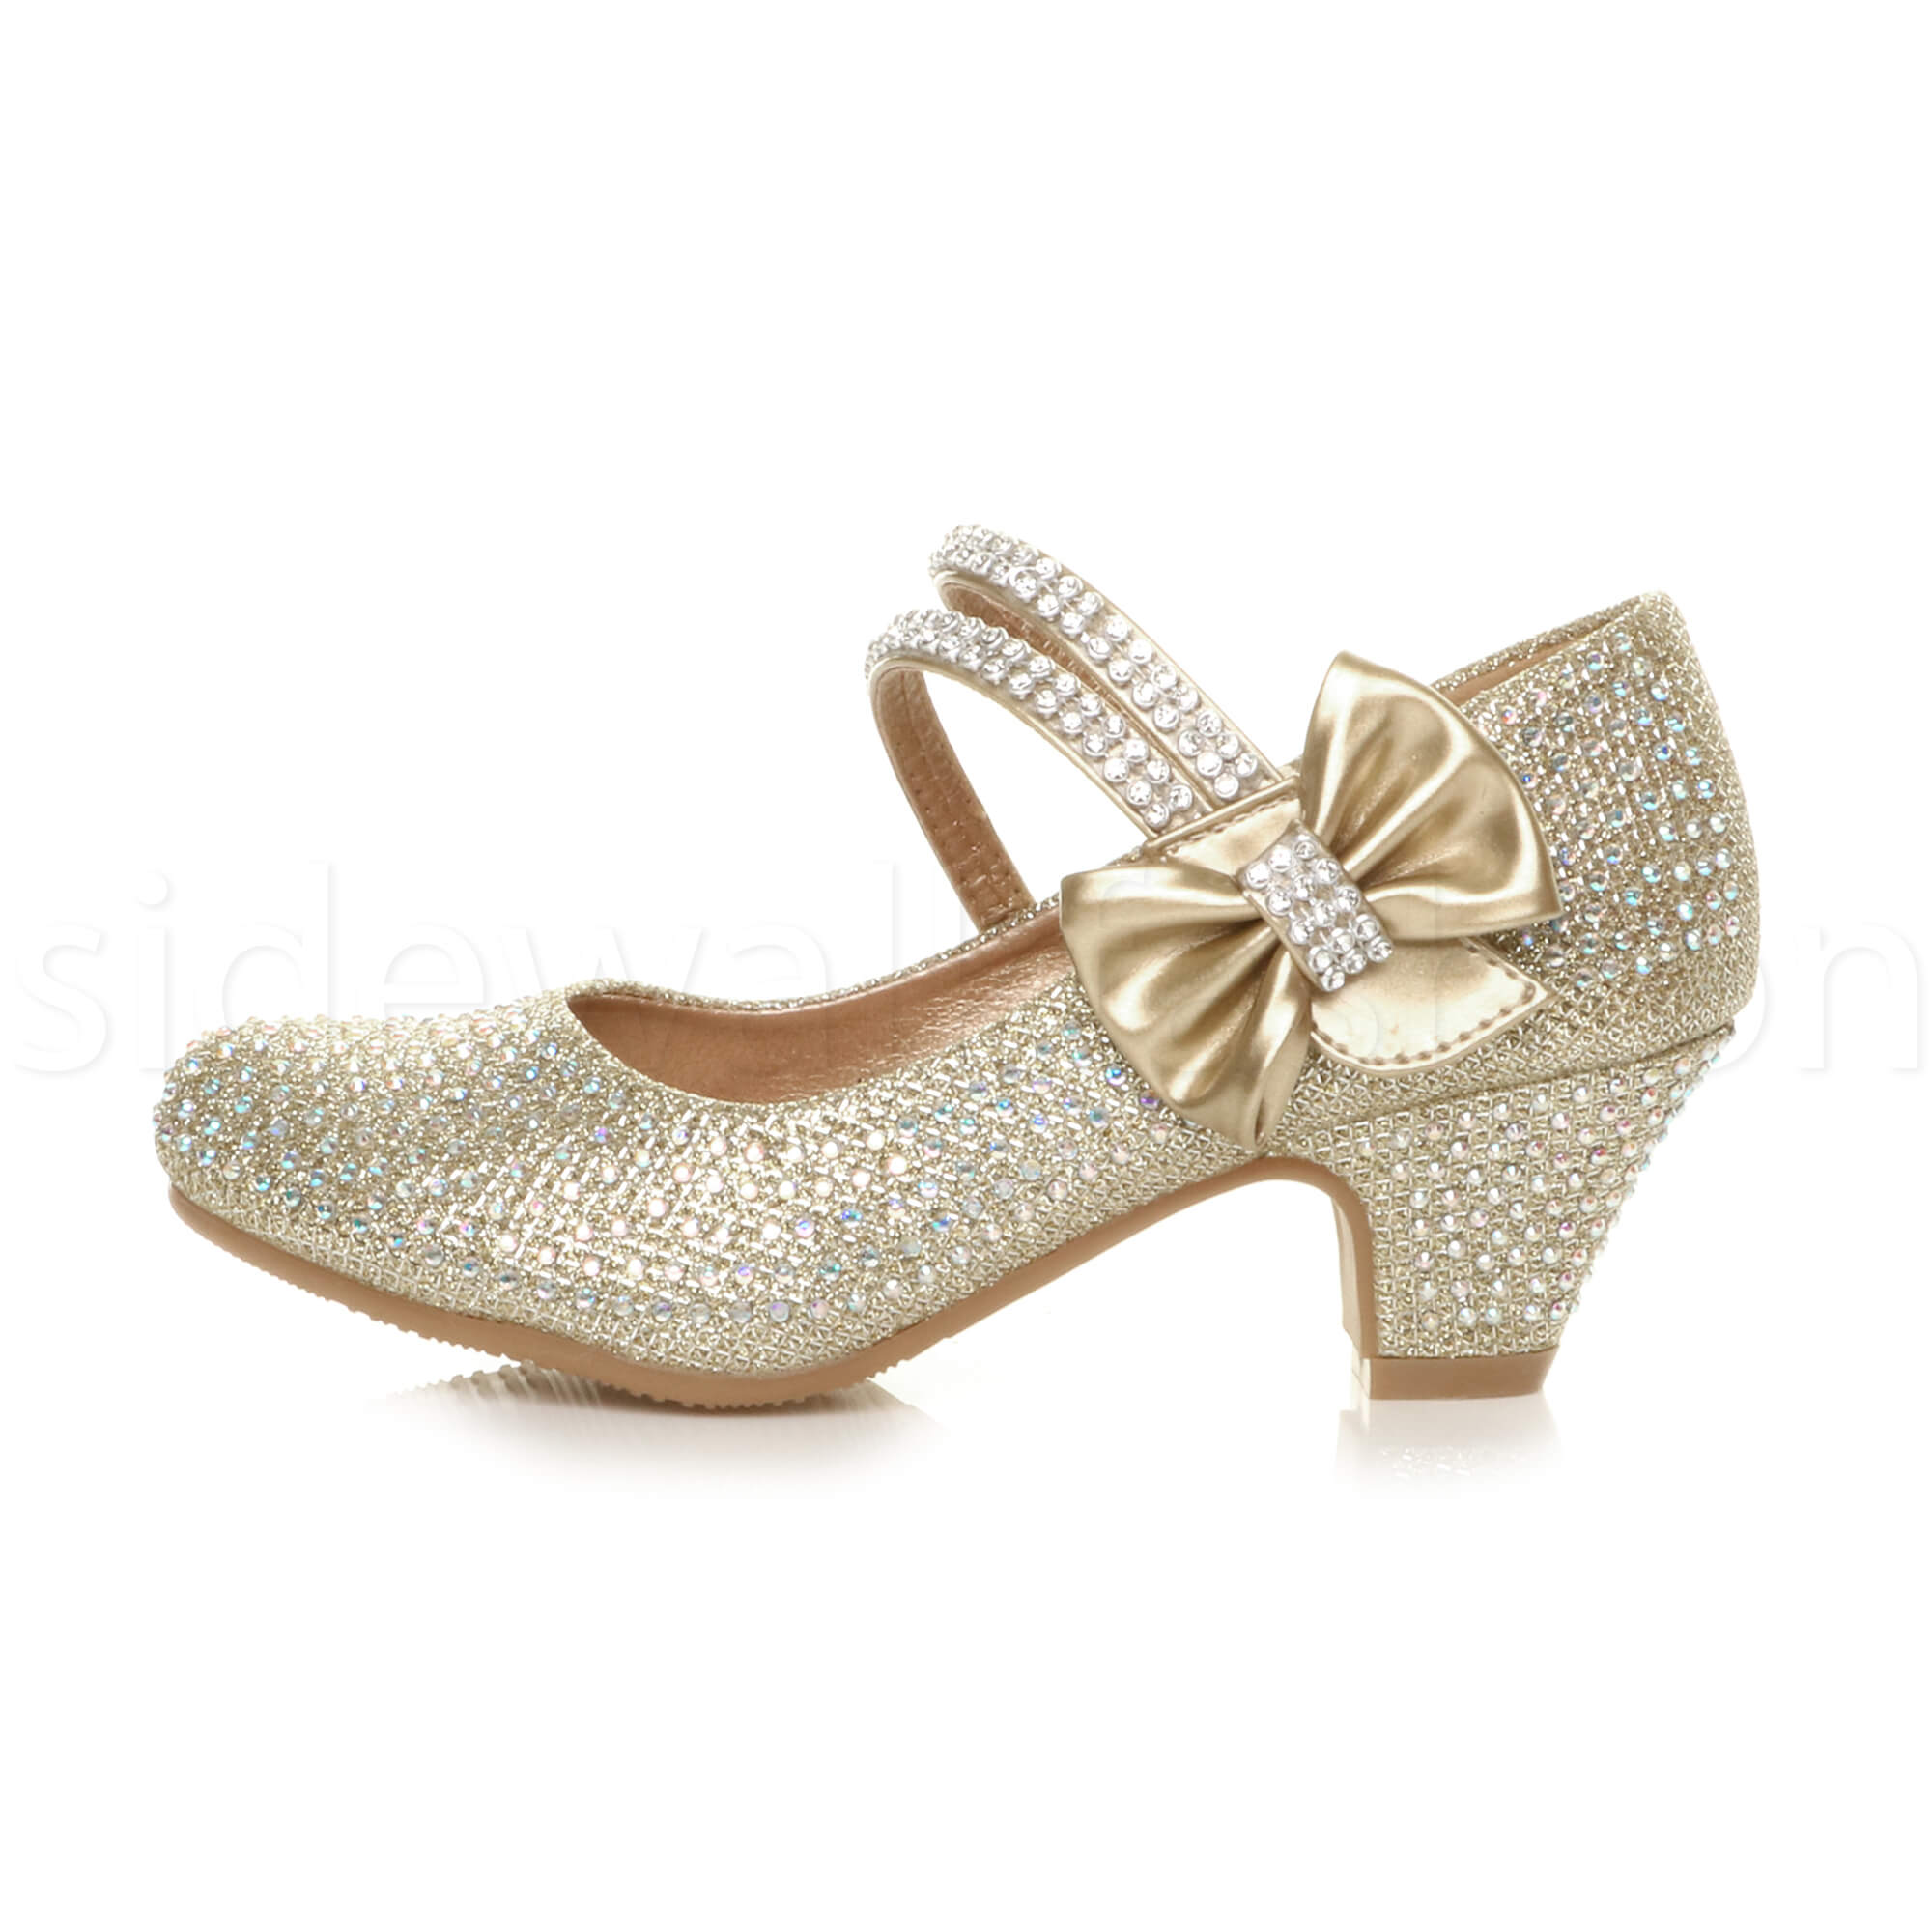 Girls-kids-childrens-low-heel-party-wedding-mary-jane-sandals-court-shoes-size